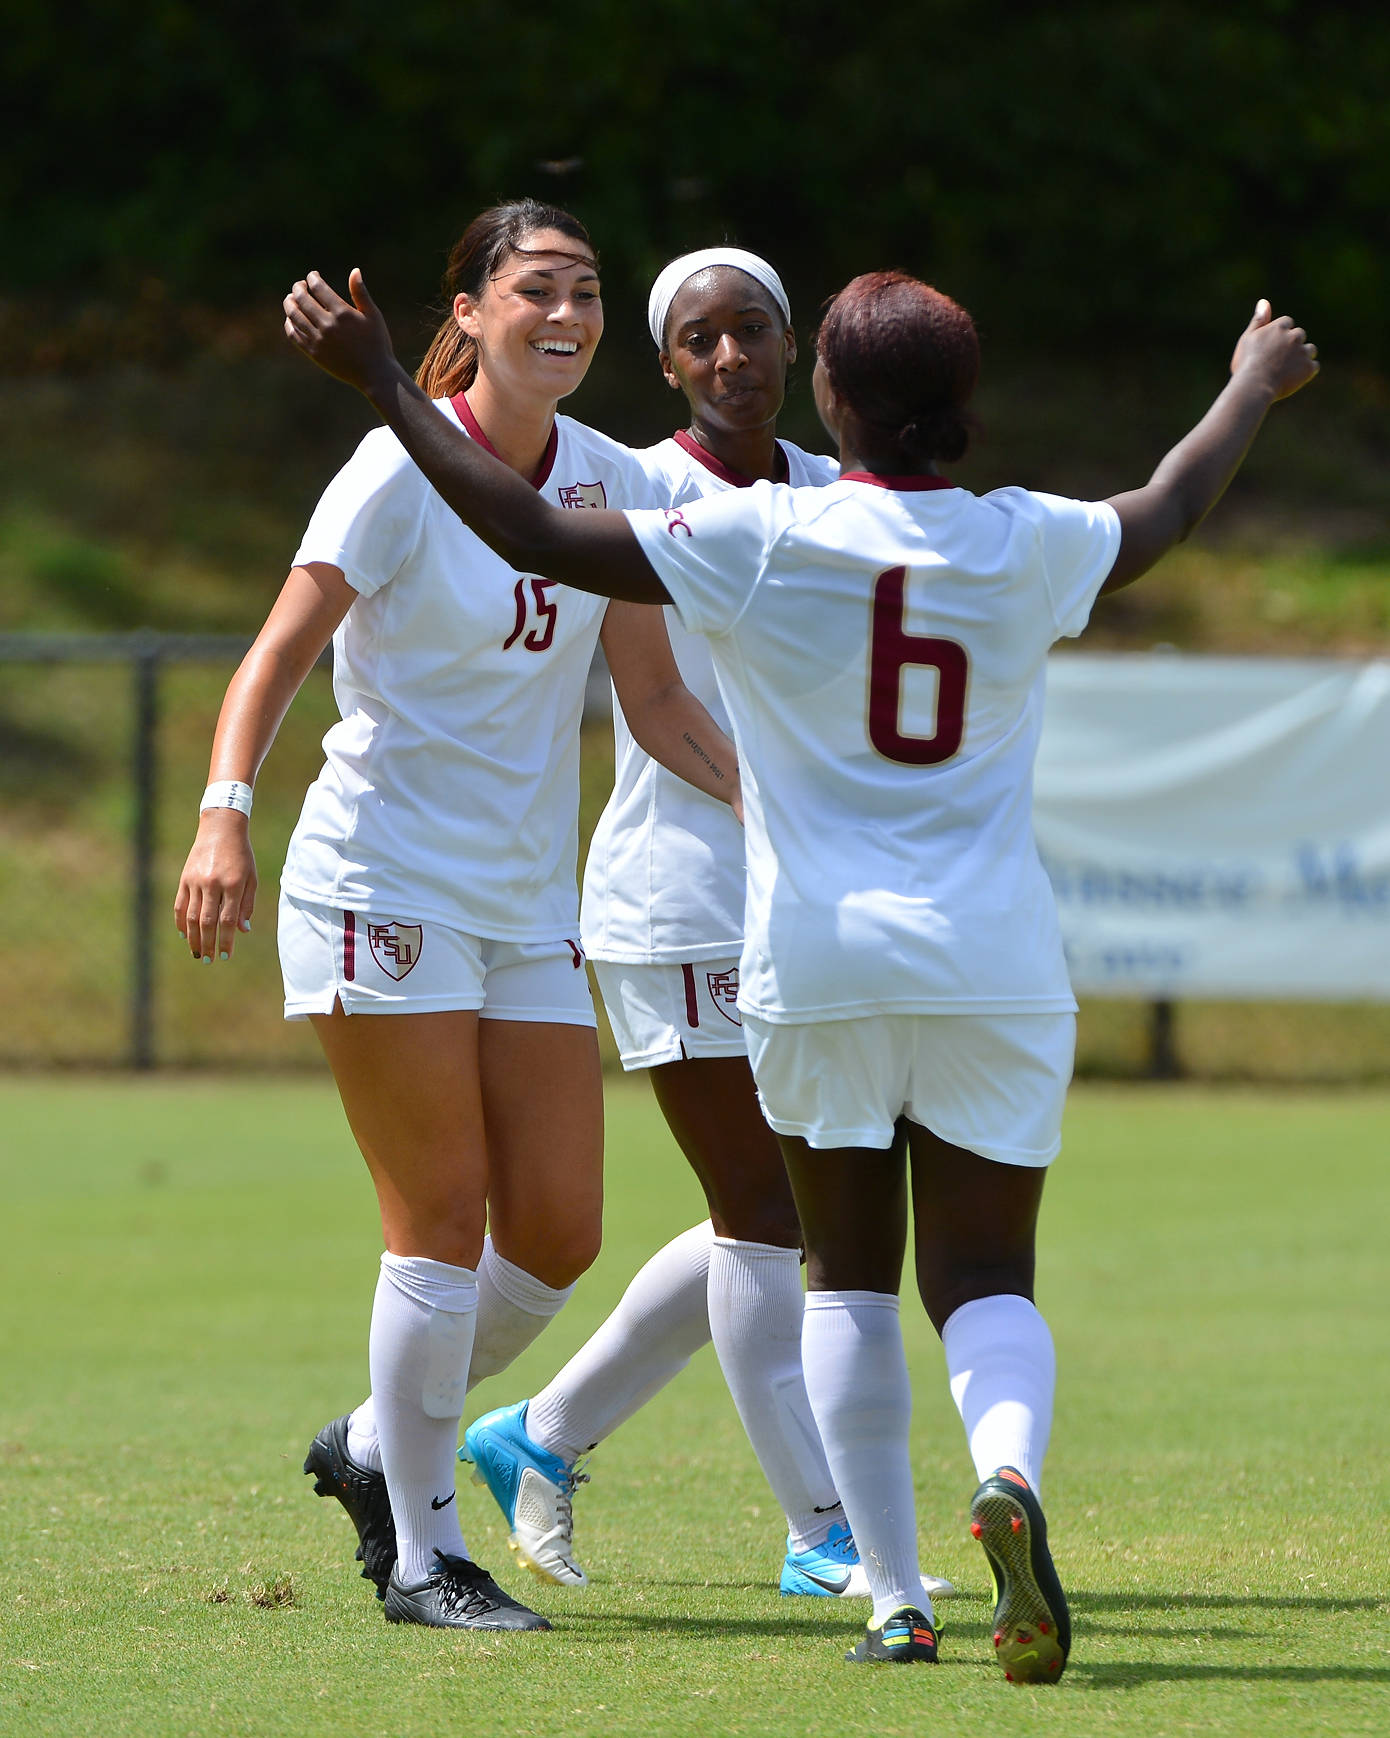 The Seminoles celebrate following Tiana's goal against Wake Forest.